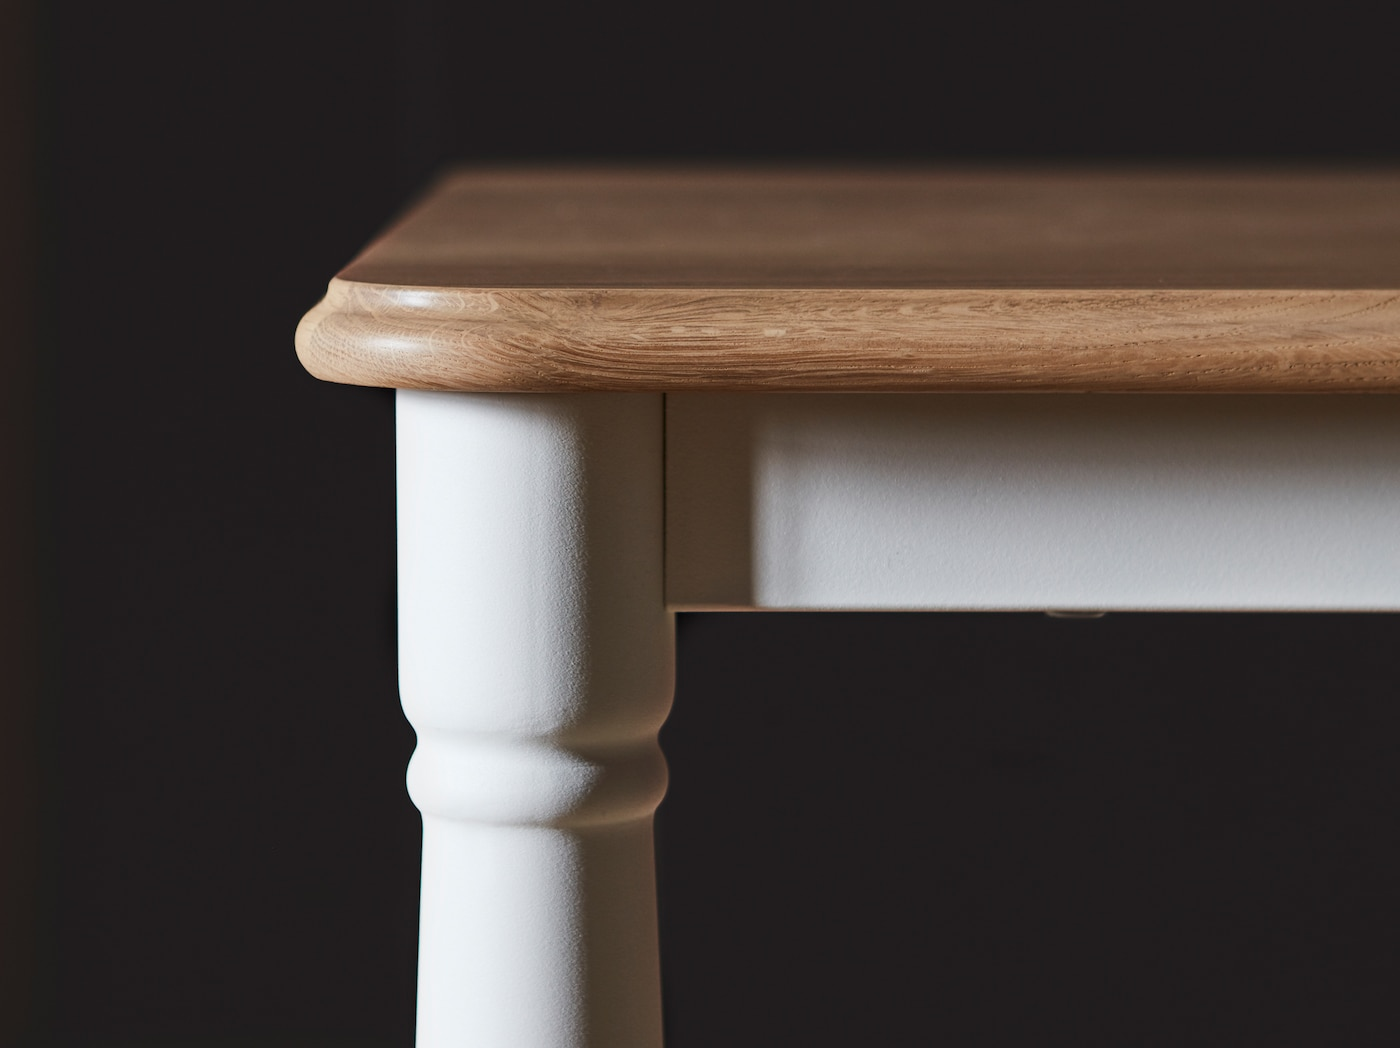 A close-up of DANDERYD dining table with an oak veneer table top and white legs shaped in a traditional style.